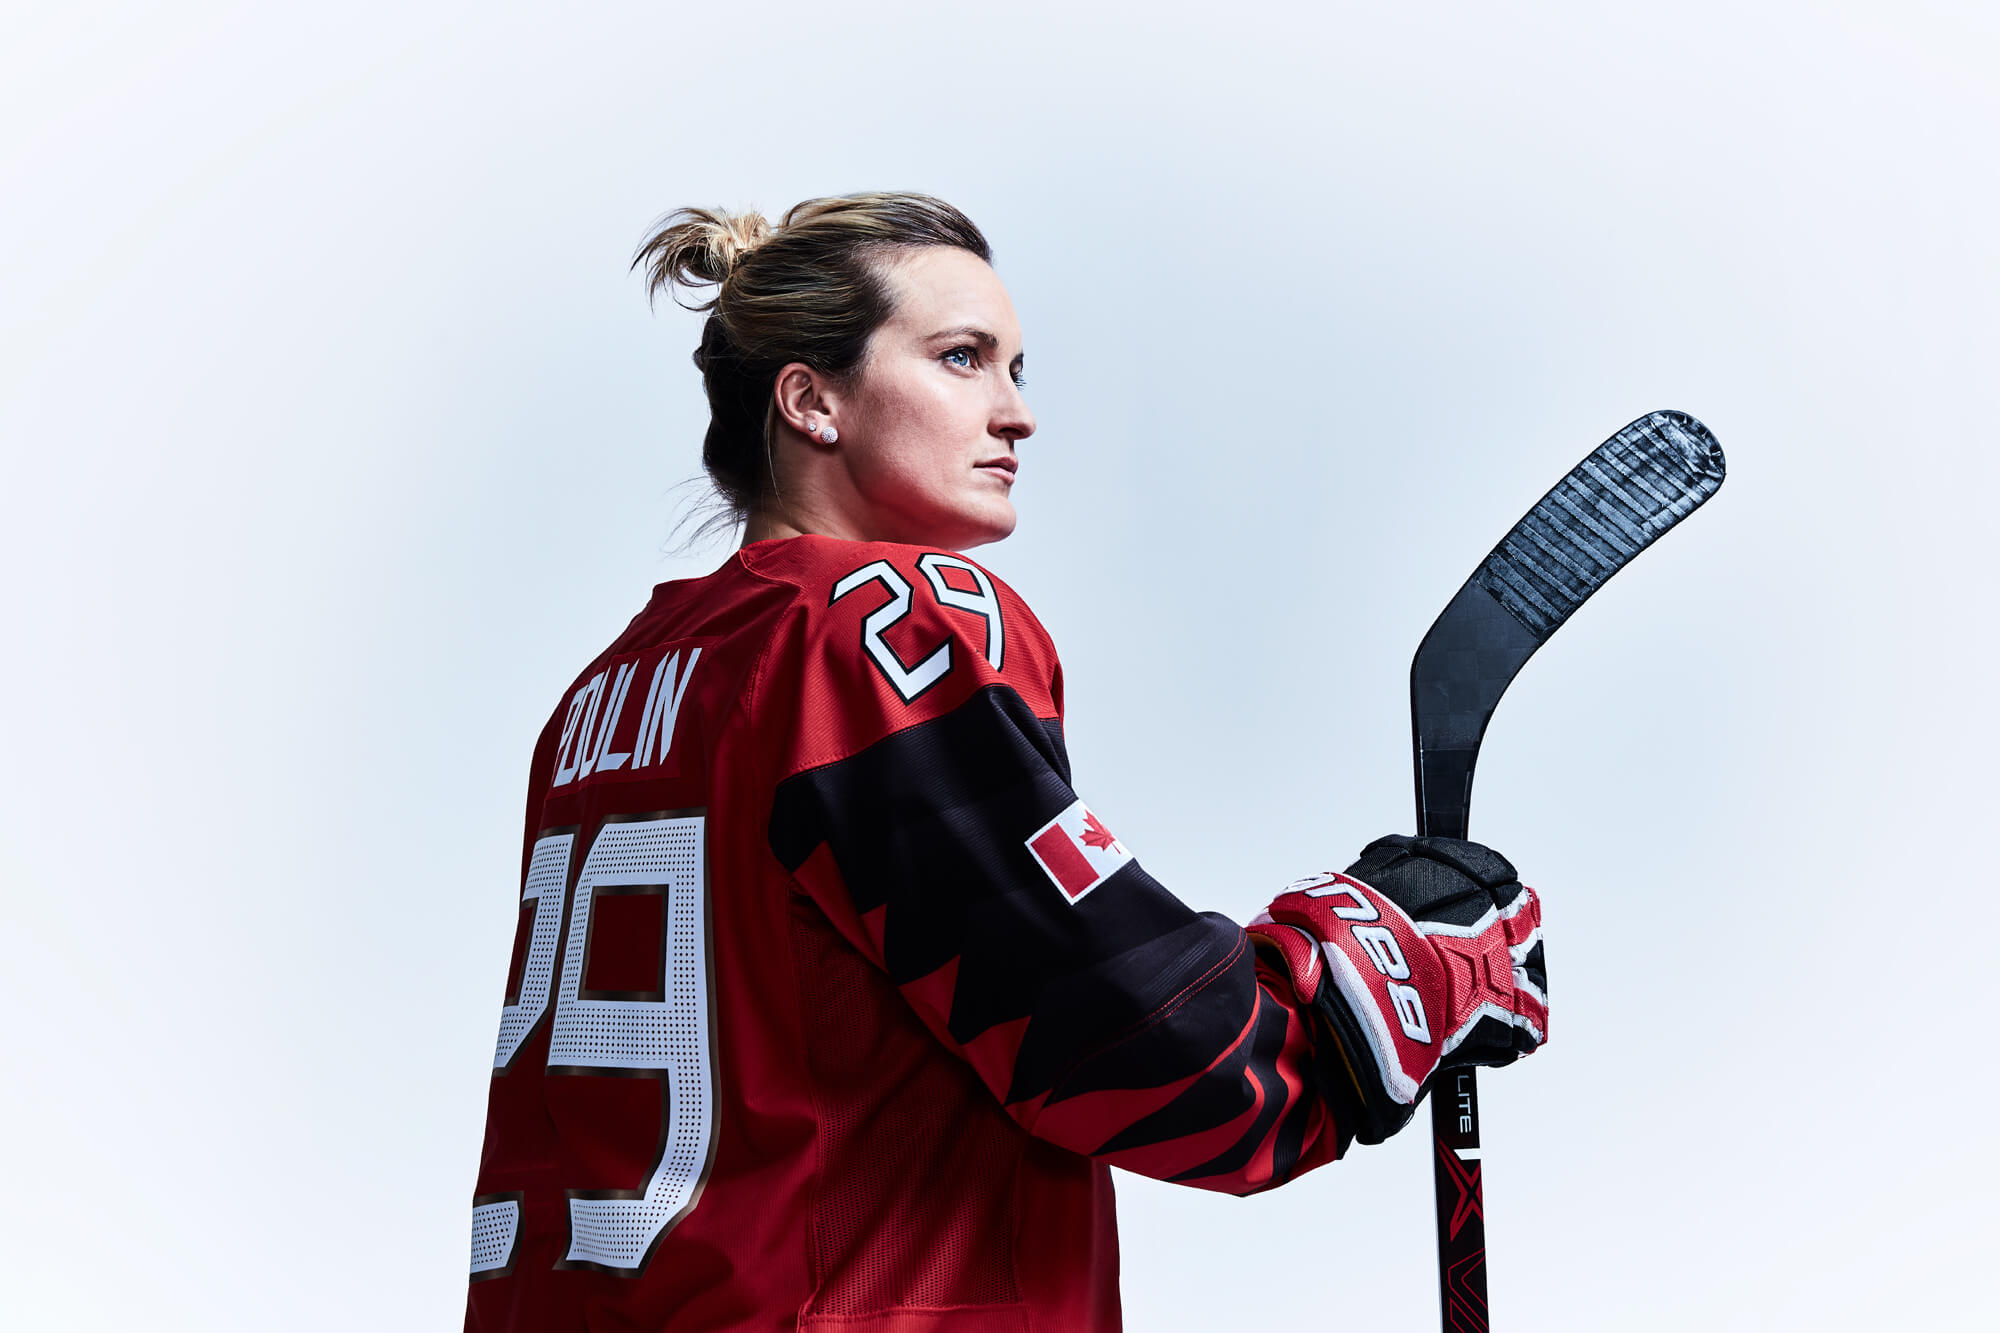 Unified Content, Unified Content Toronto, Aaron Cobb, EnRoute, Team Canada, Canadians, Athletes, Canadian Athlete, Canadian Athletes, Professional Hockey, Athlete portrait, Team canada hockey, canadian hockey, olympic hockey,